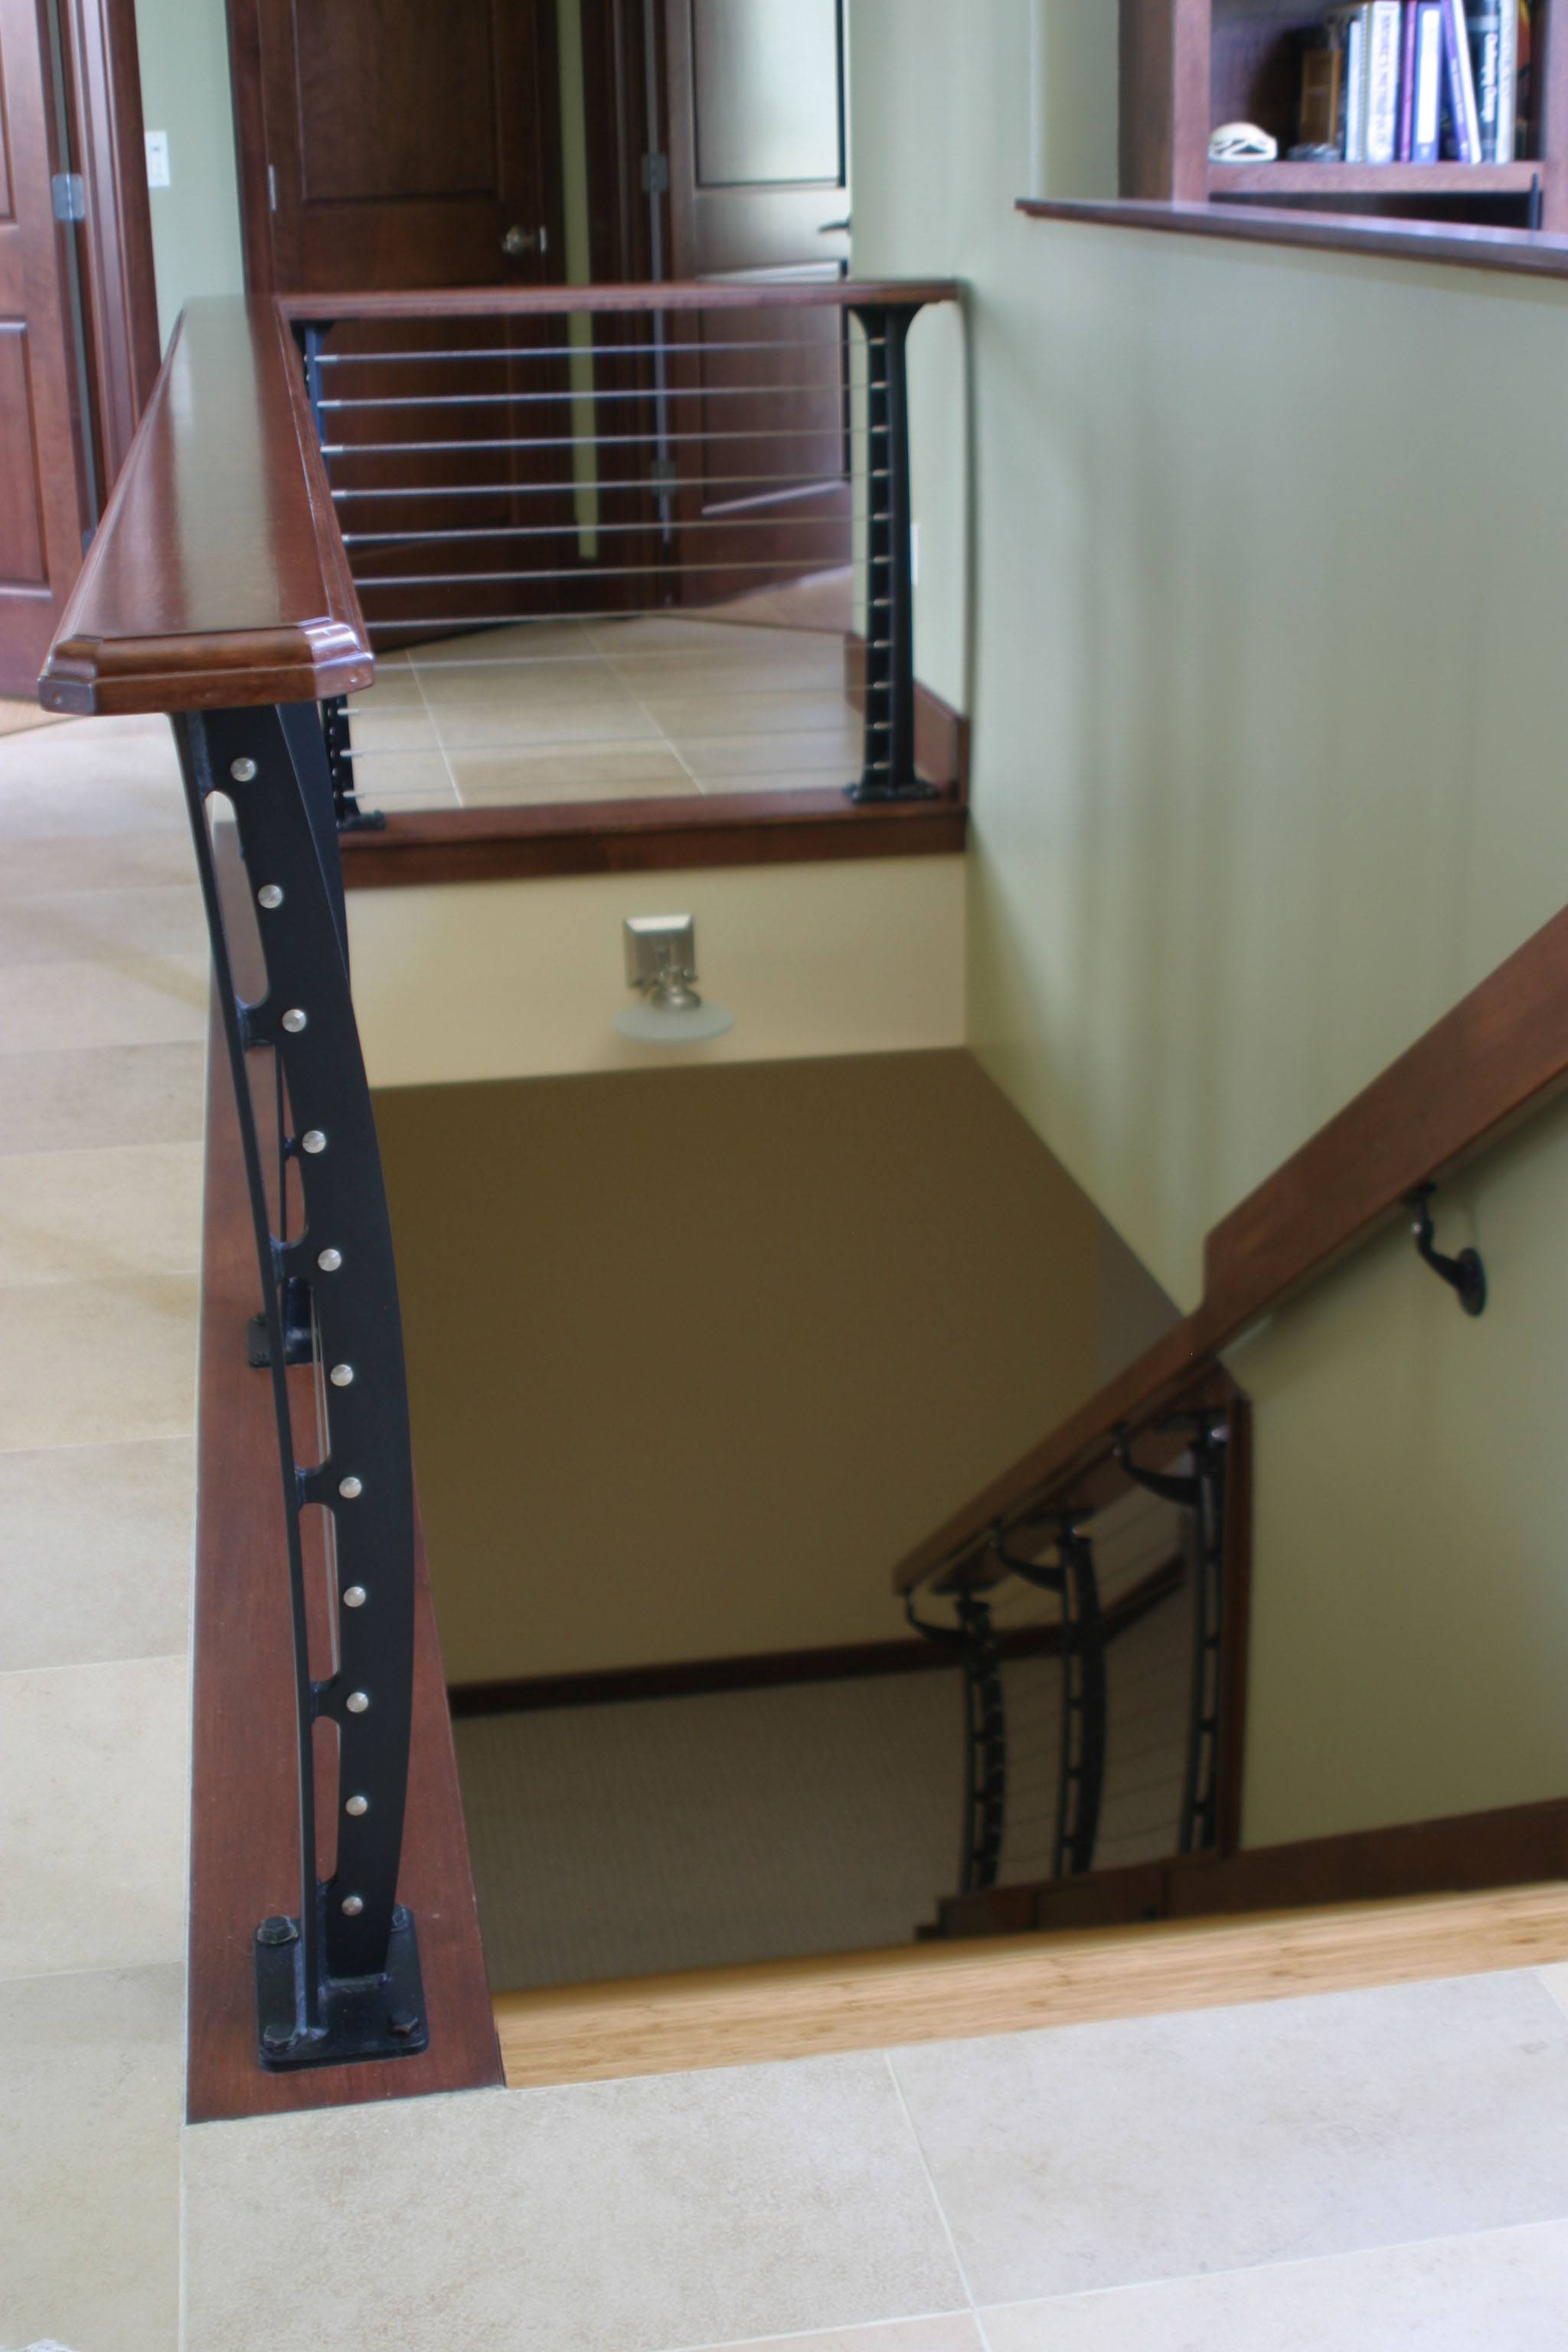 Cable guard rail around stair opening